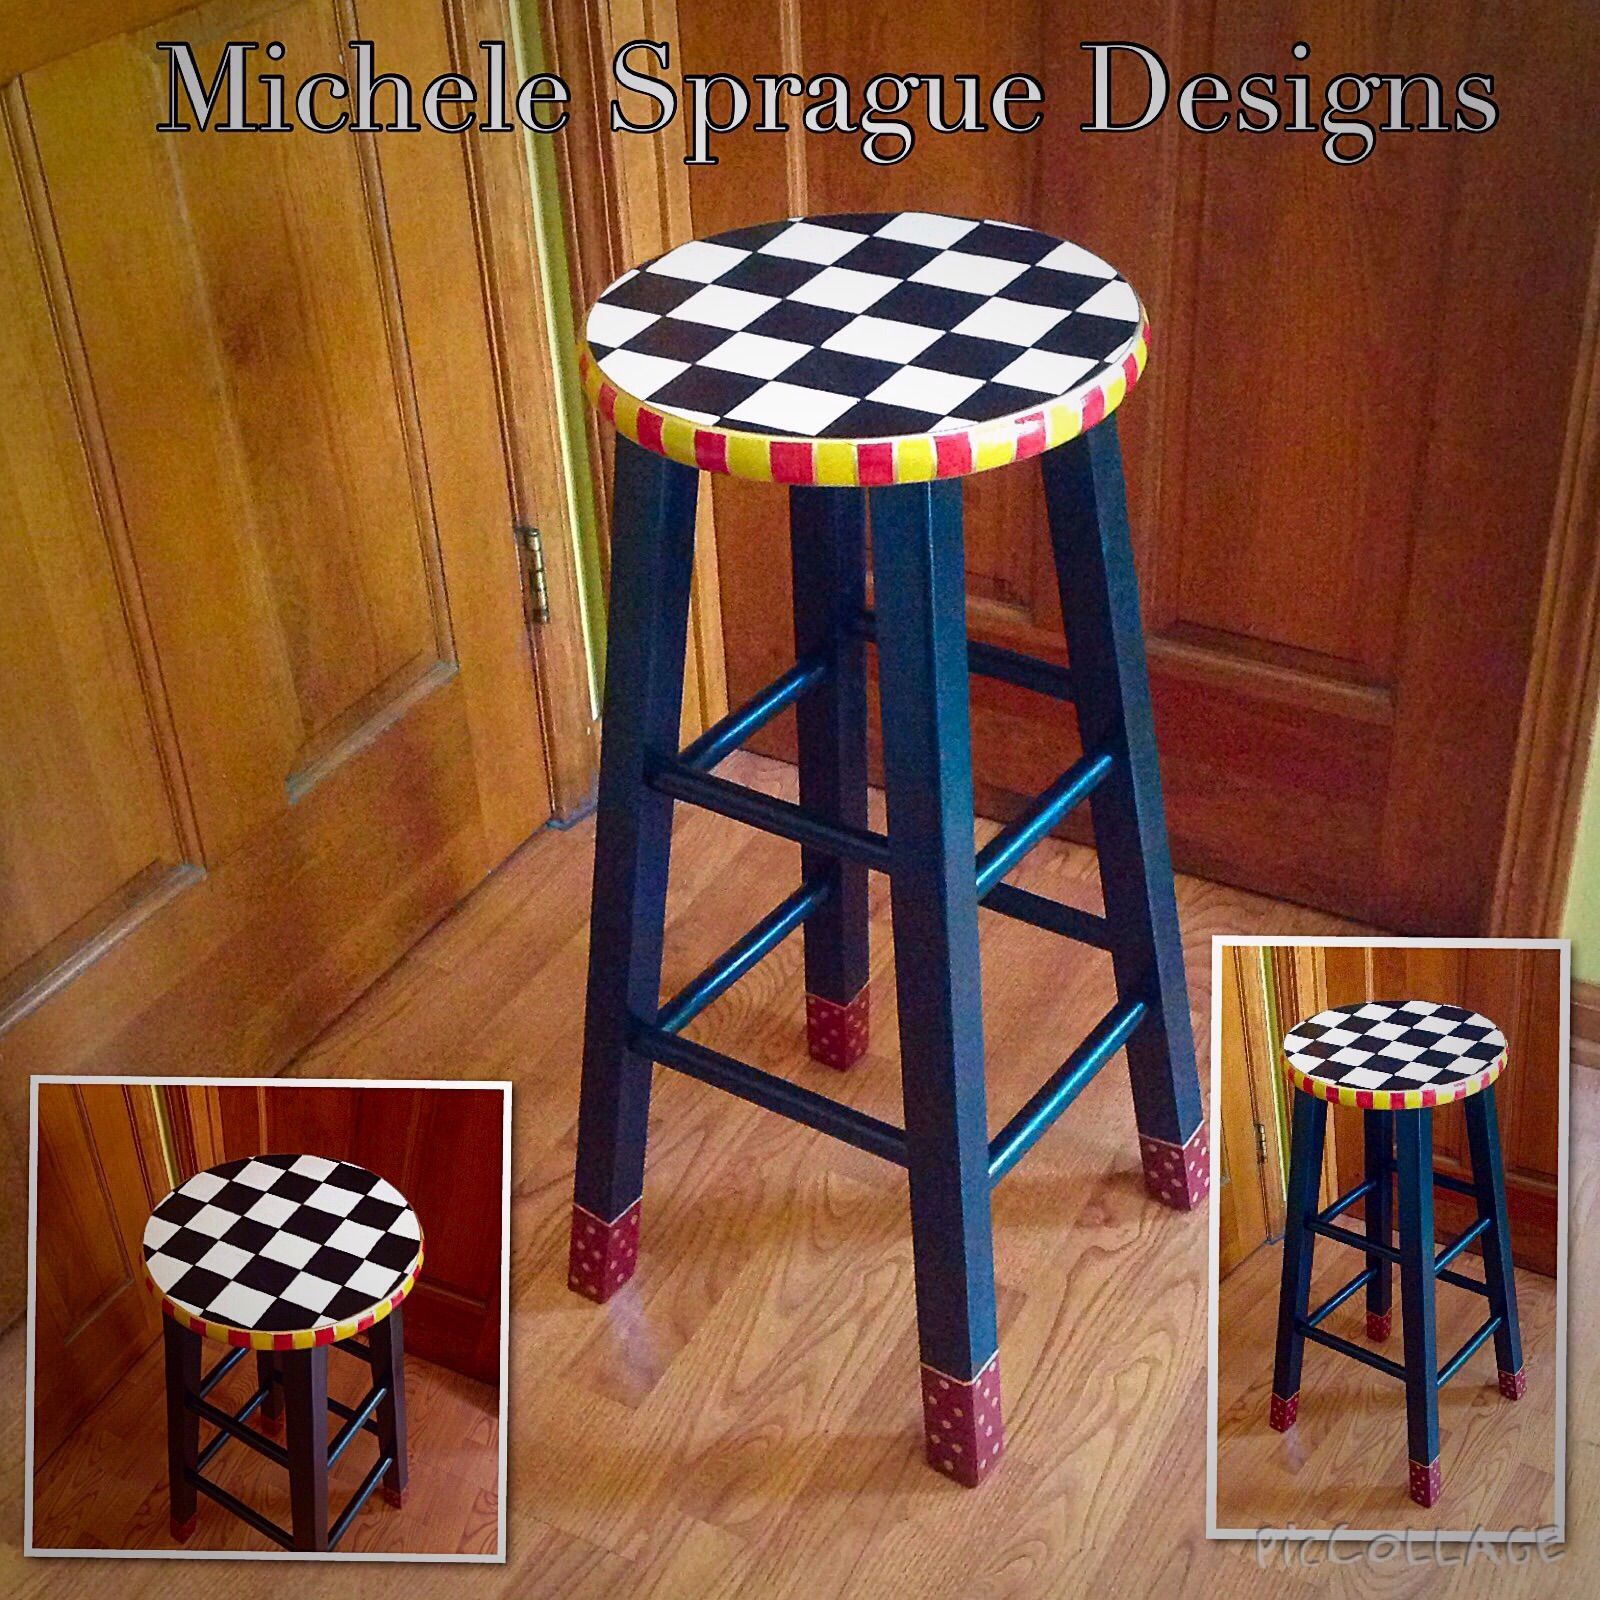 Groovy Buy A Hand Made Painted Bar Stool 24 Or 29 Custom Round Caraccident5 Cool Chair Designs And Ideas Caraccident5Info